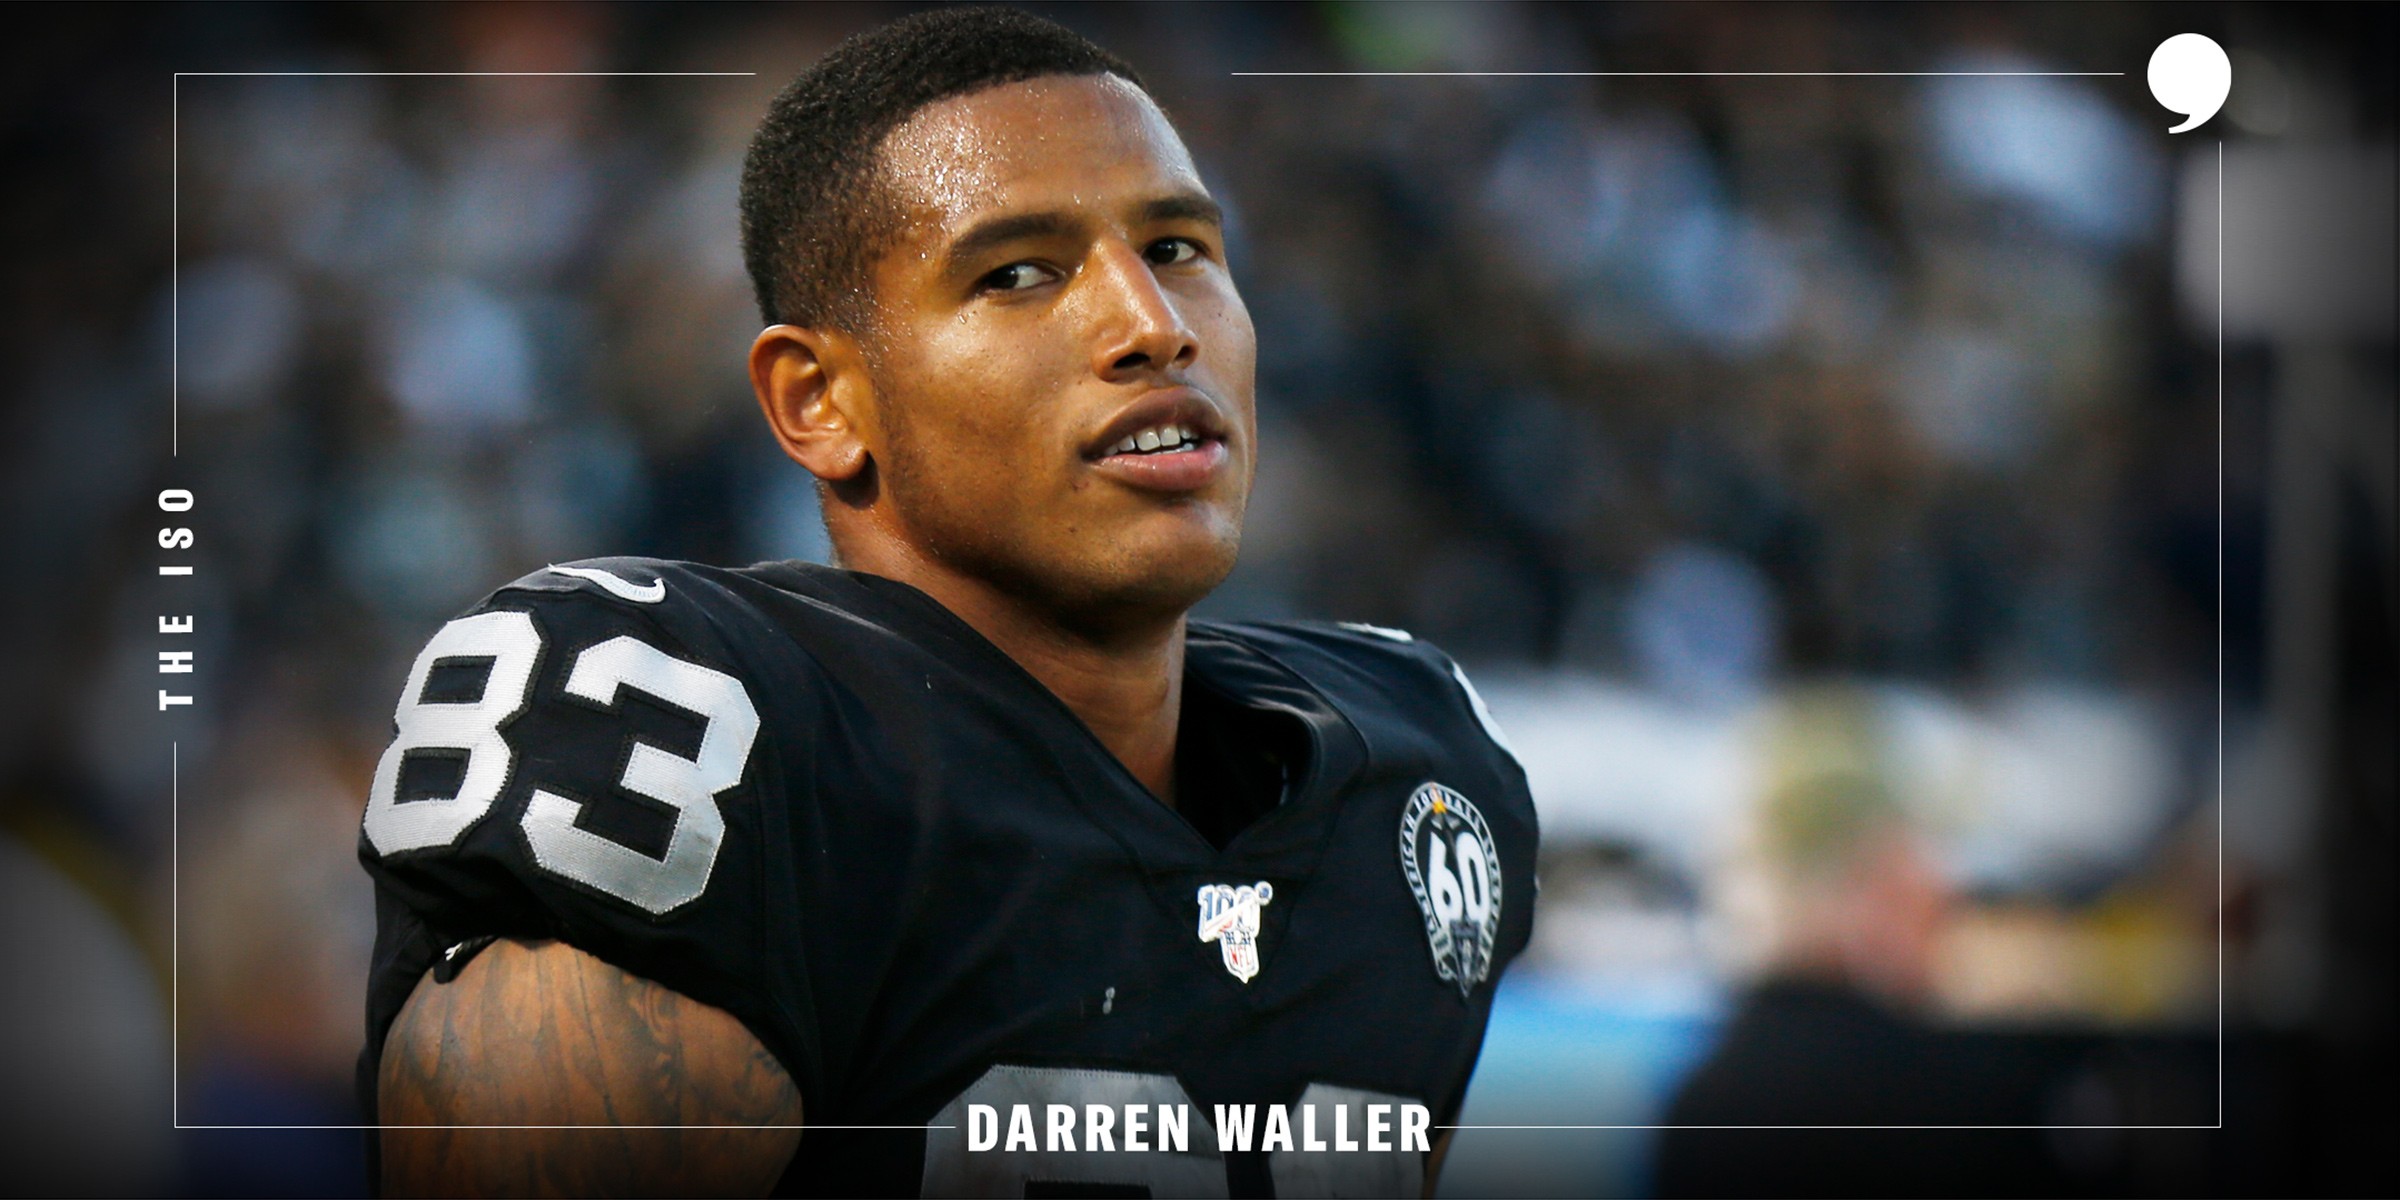 The Iso: Darren Waller